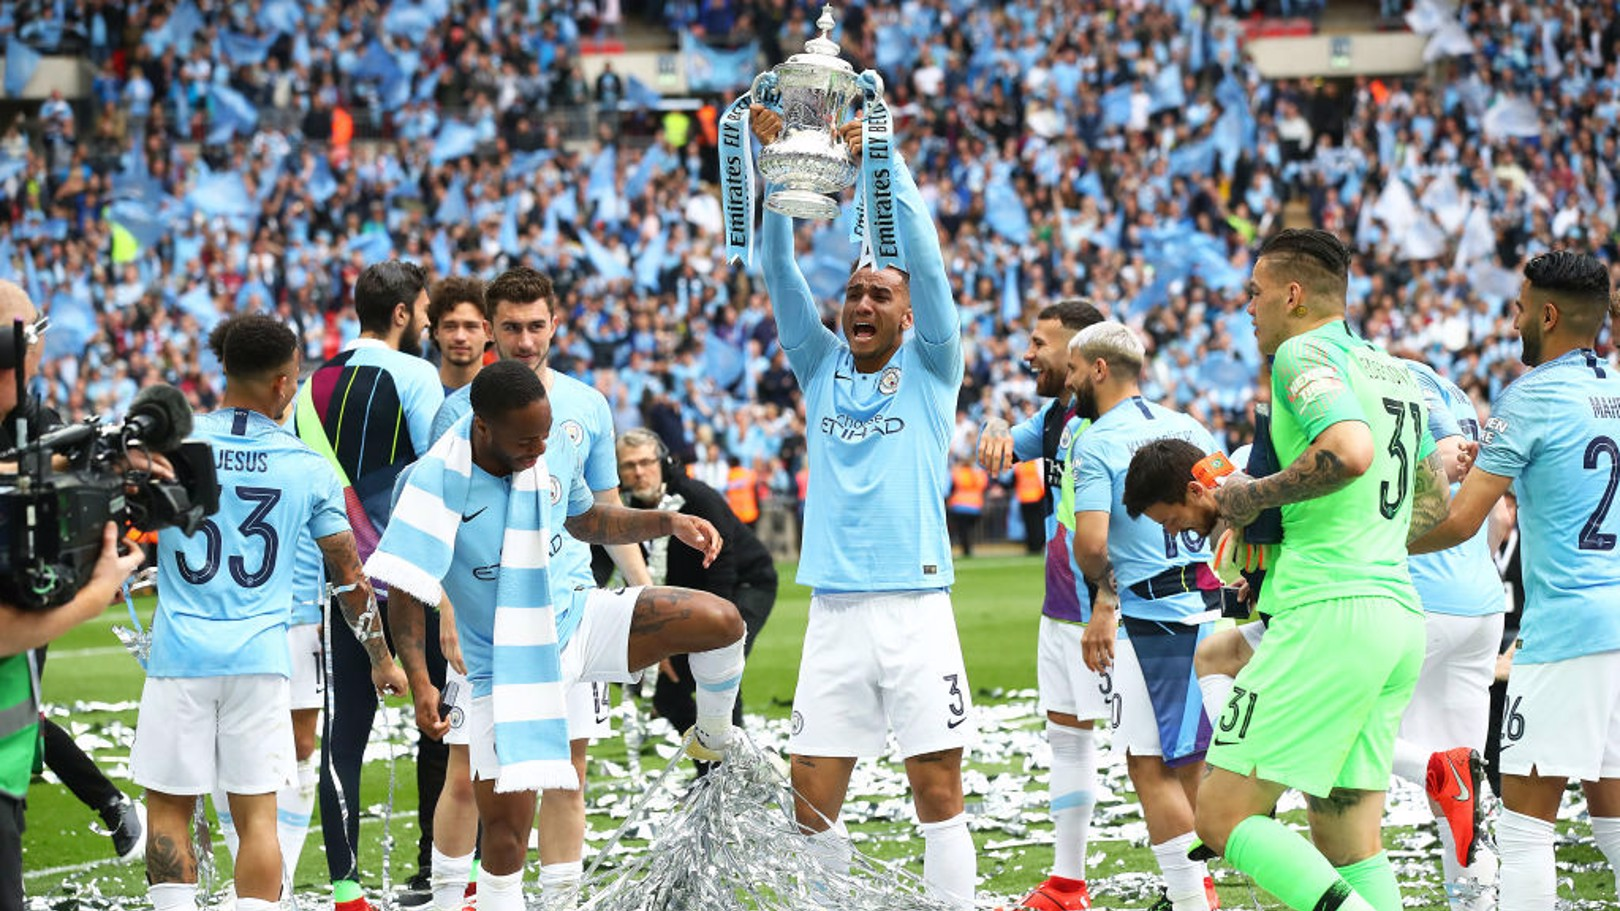 THANK YOU DANILO: The Brazilian has left City after two hugely successful seasons